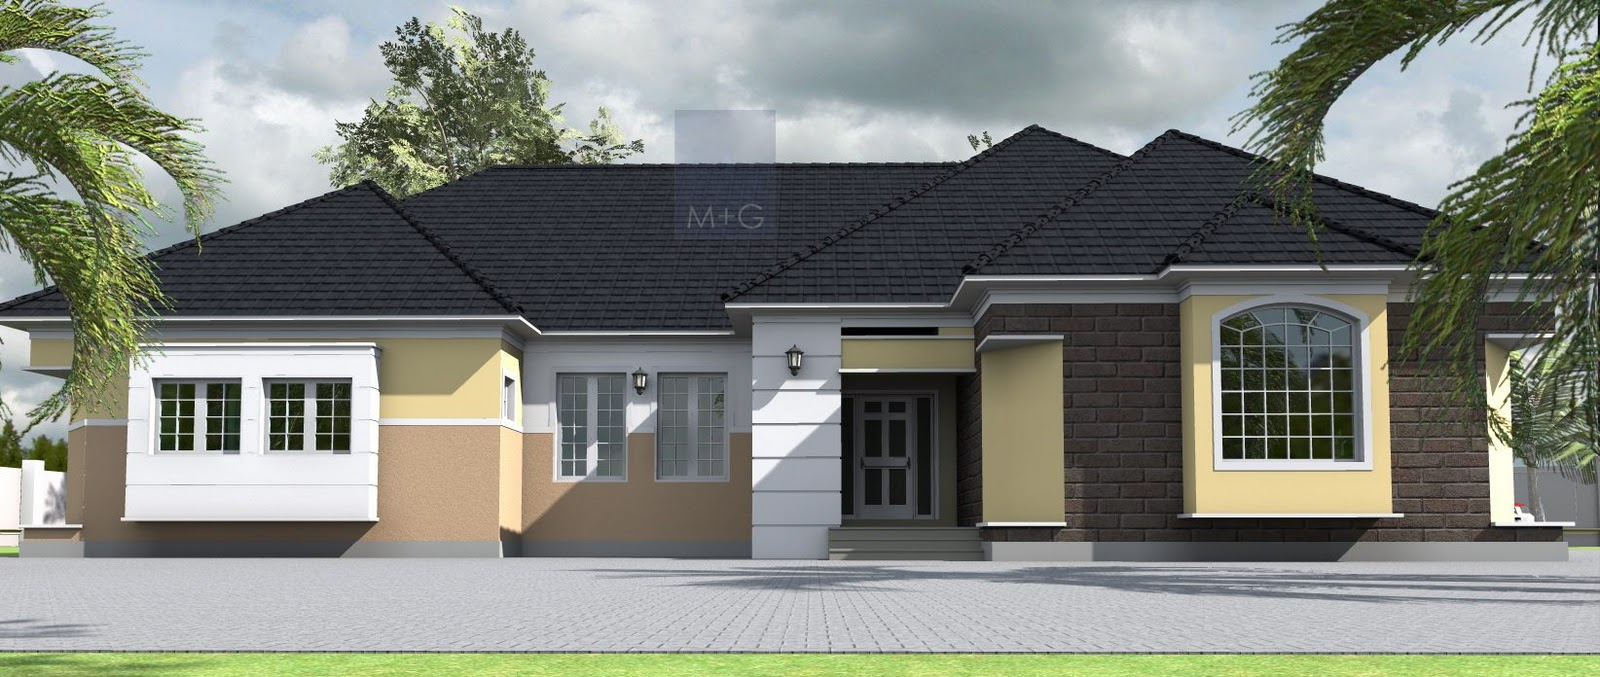 Contemporary Nigerian Residential Architecture: 4 bedroom Bungalow